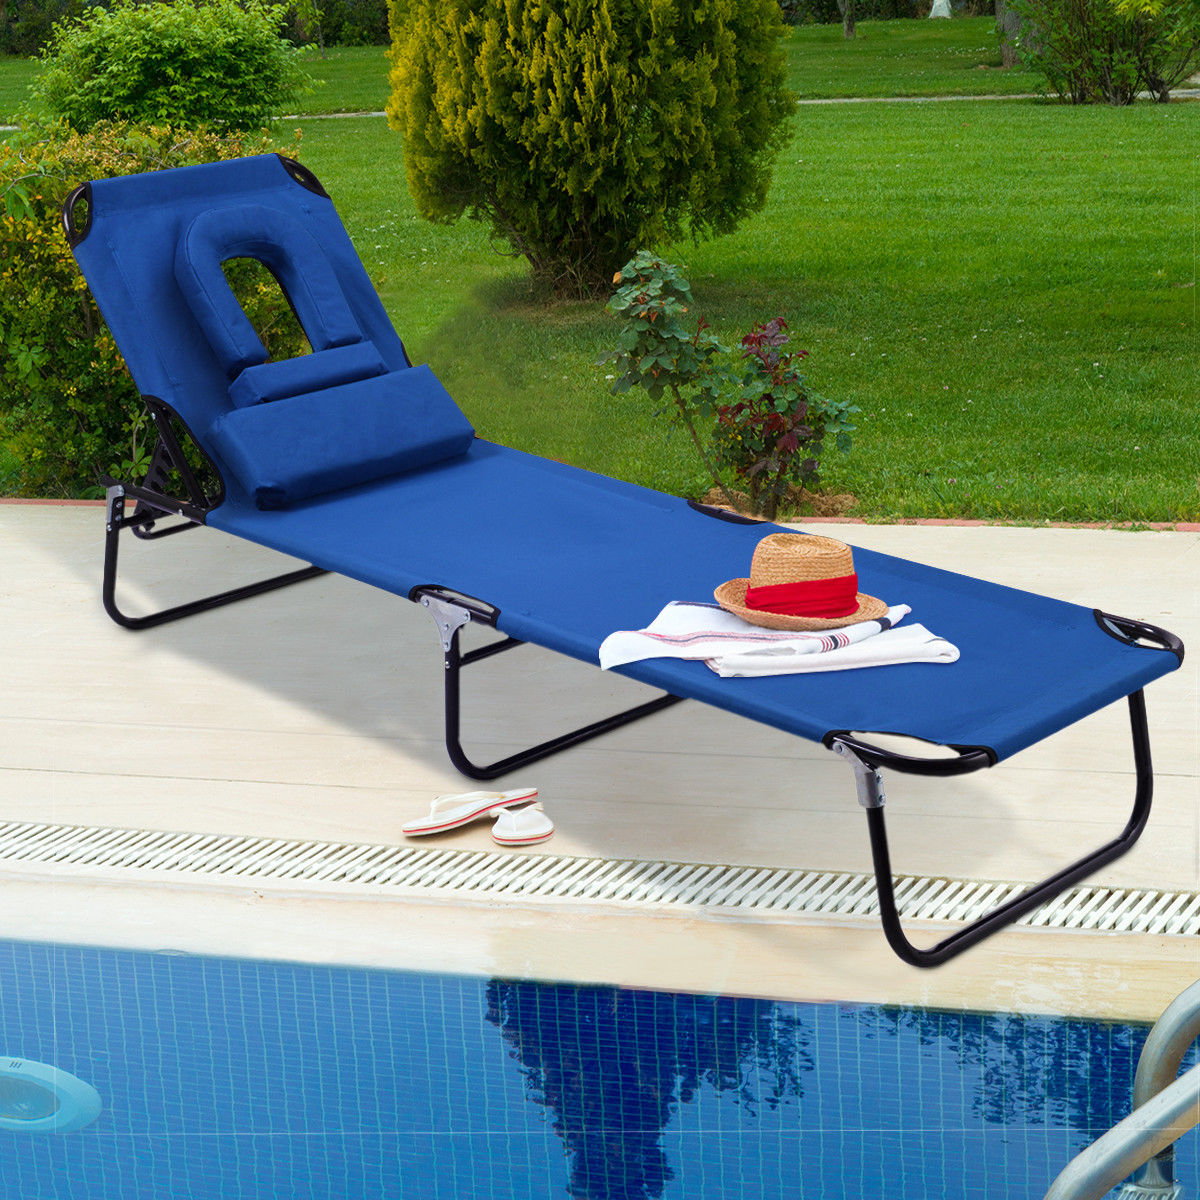 Product Image Costway Patio Foldable Chaise Lounge Chair Bed Outdoor Beach  Camping Recliner Pool Yard